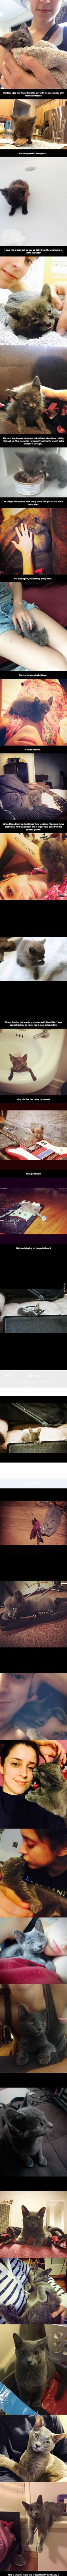 ♡♥Dmitrius the stray kitten from being found near death to becoming a healthy and happy cat 30 pics♥♡